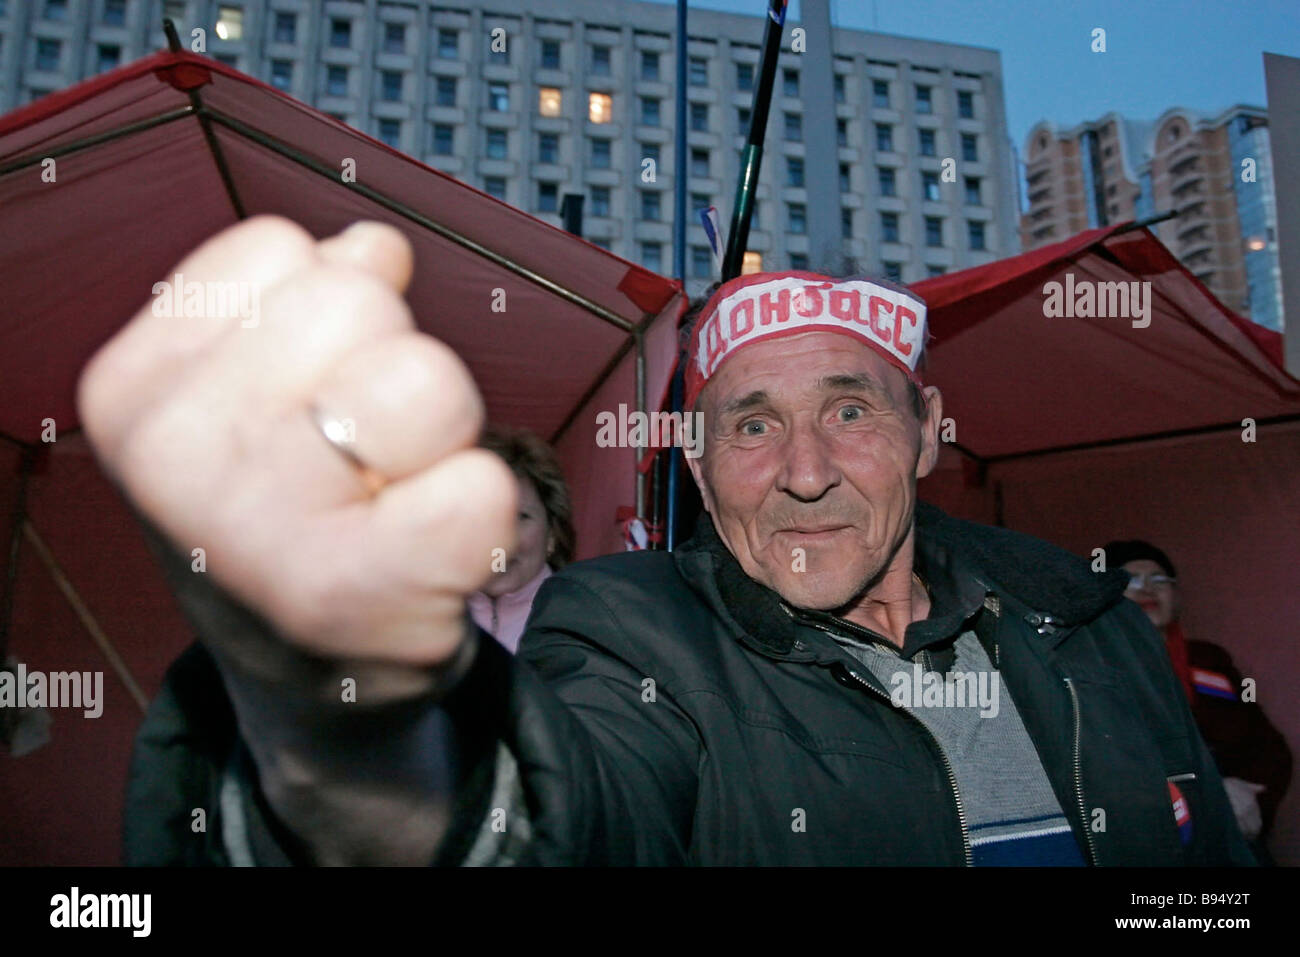 A supporter of Natalia Vytrenko s People s Opposition party at a rally in Kiev - Stock Image